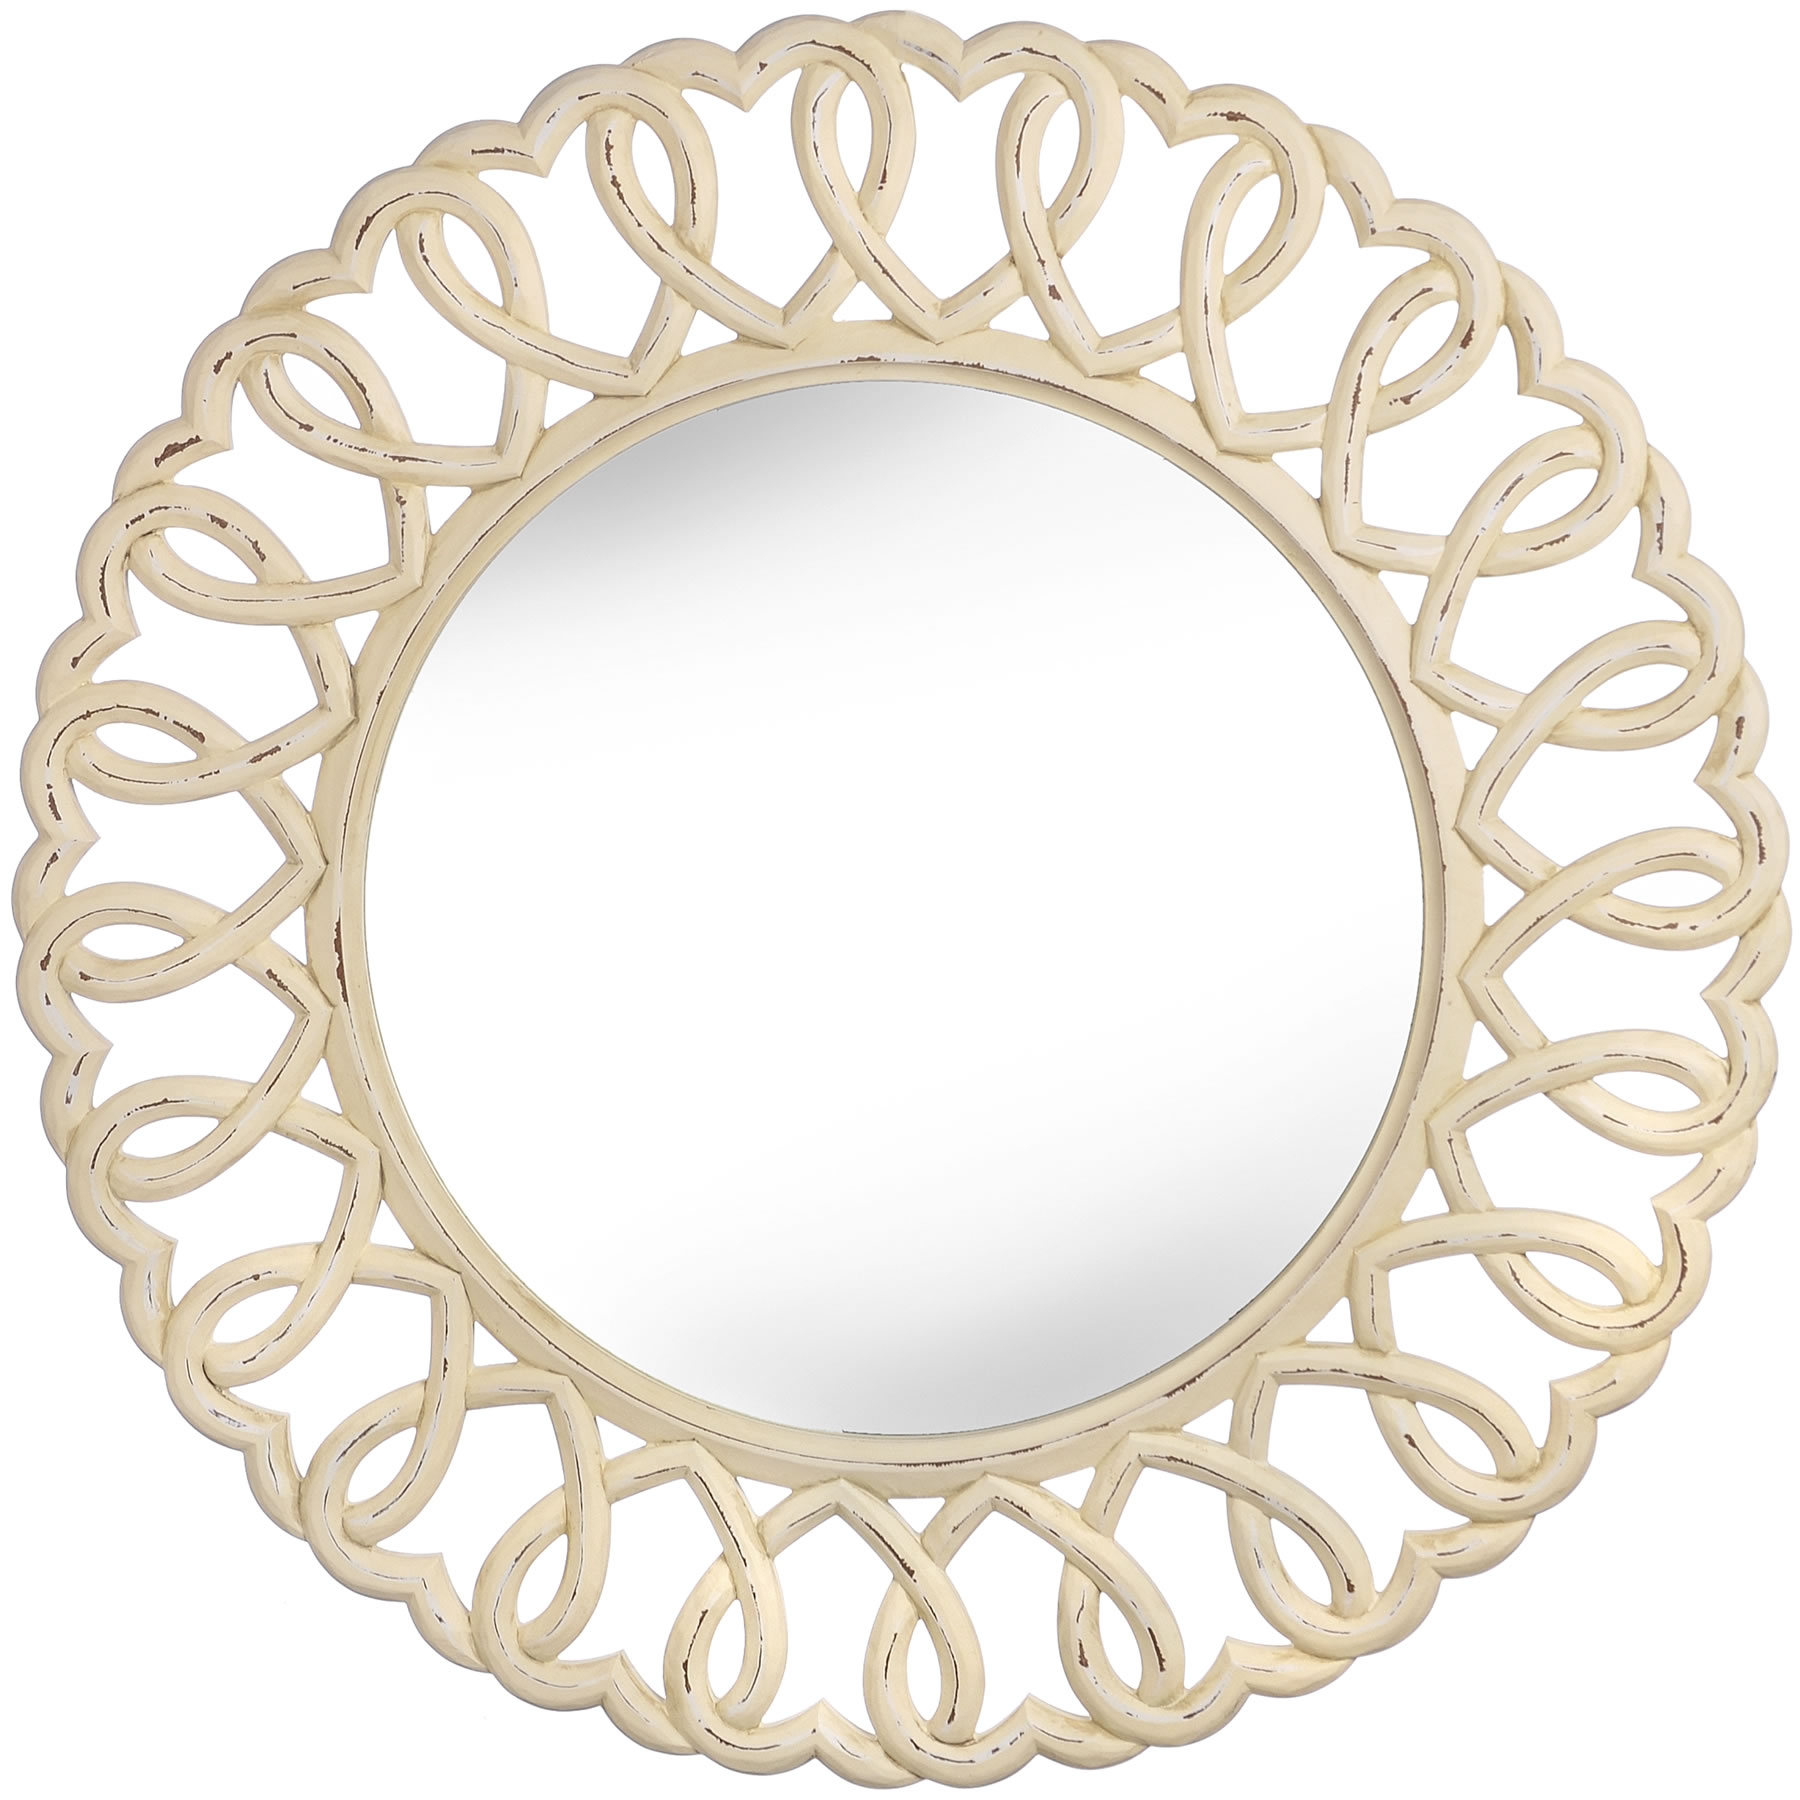 Olivia Heart Wall Mirror Stunning Large Mirror 90cm Round Wall For Large Heart Mirror (Image 13 of 15)